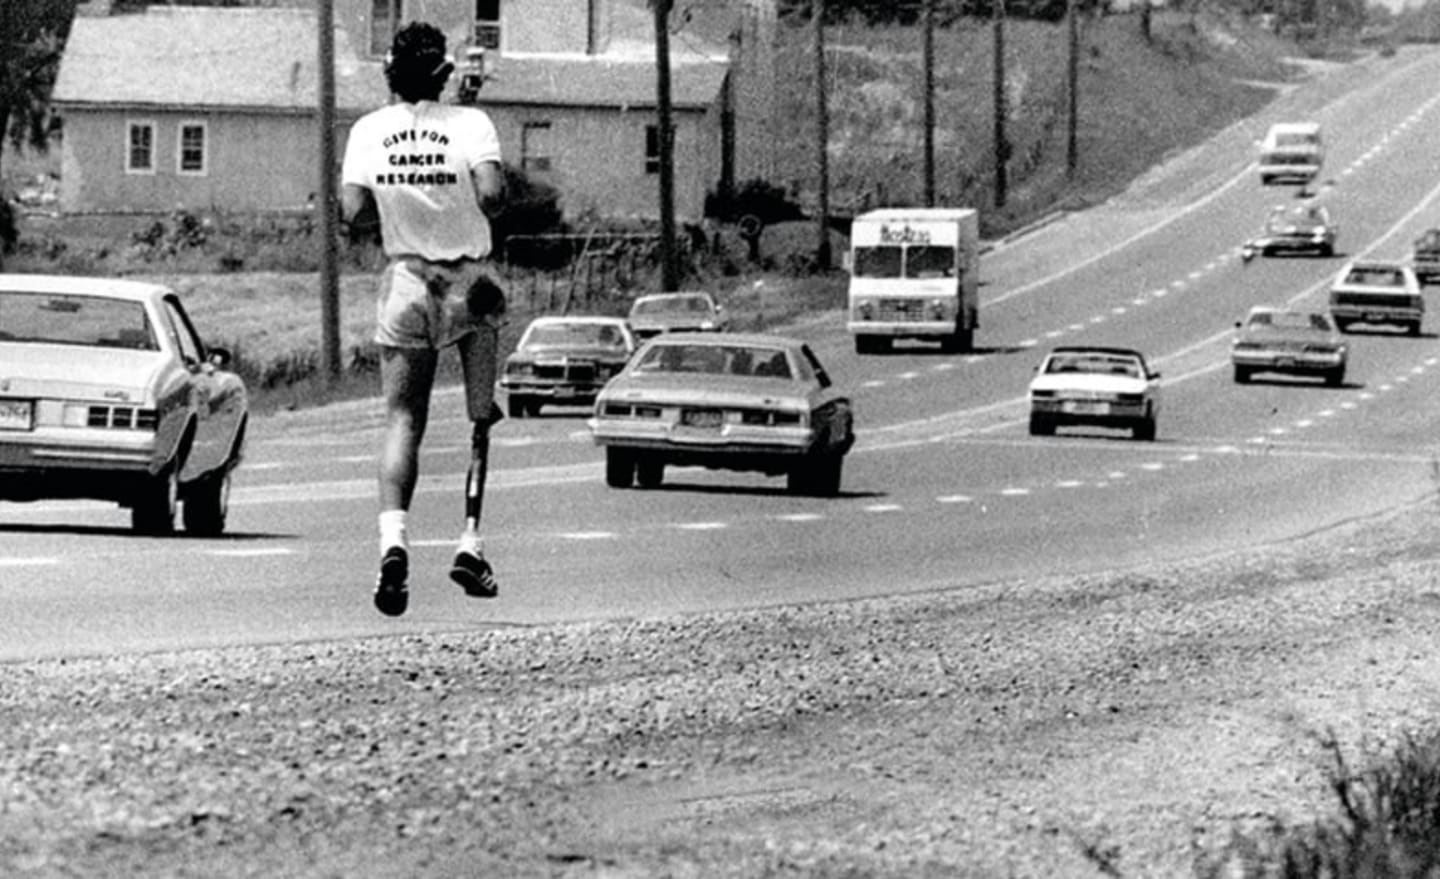 Terry Fox running on the streets during his Marathon of Hope in Canada. Marathon of Hope, Legend, Terry Fox, GamePlanA.